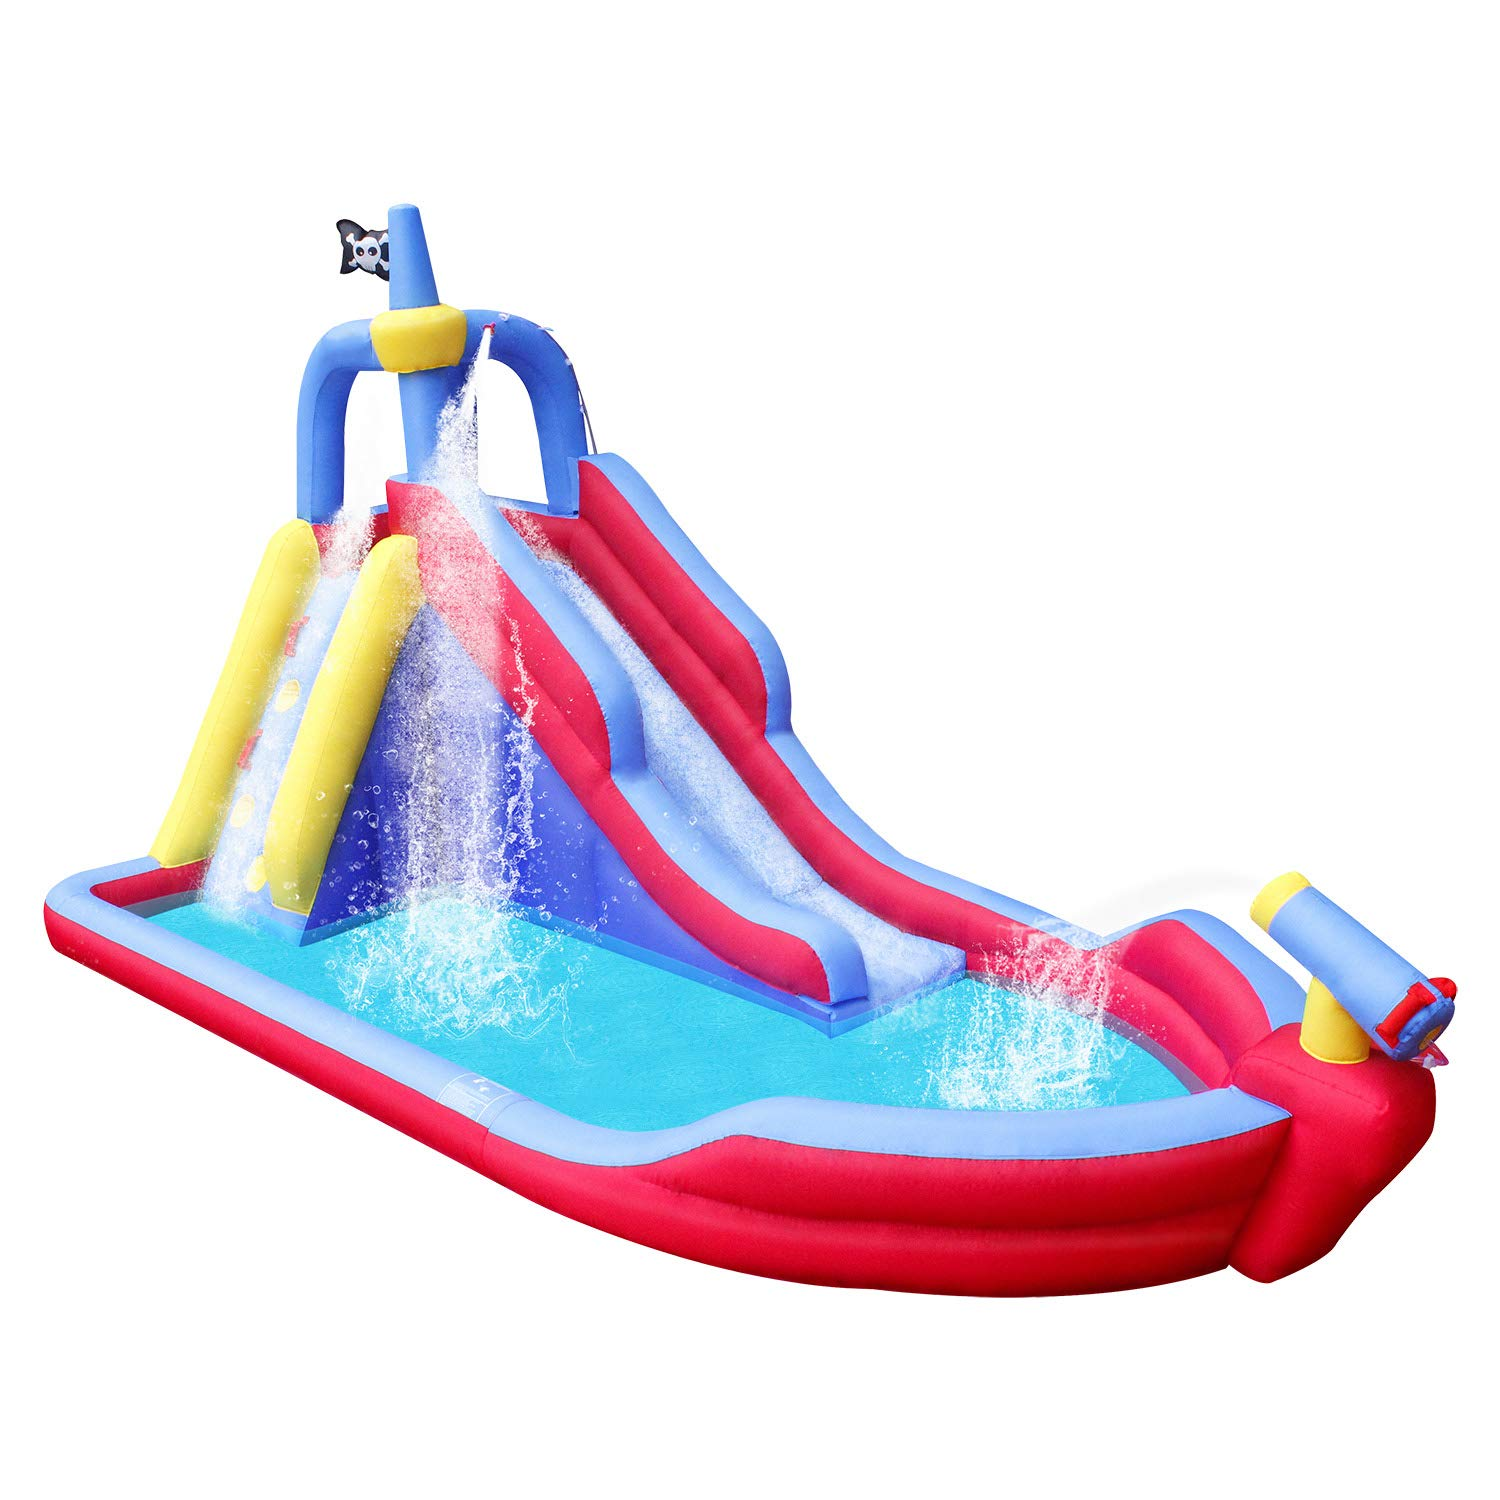 RETRO JUMP Inflatable Pirate Boat Bouncy Water Slide with Blower Climbing Wall Water Park for Kids by RETRO JUMP